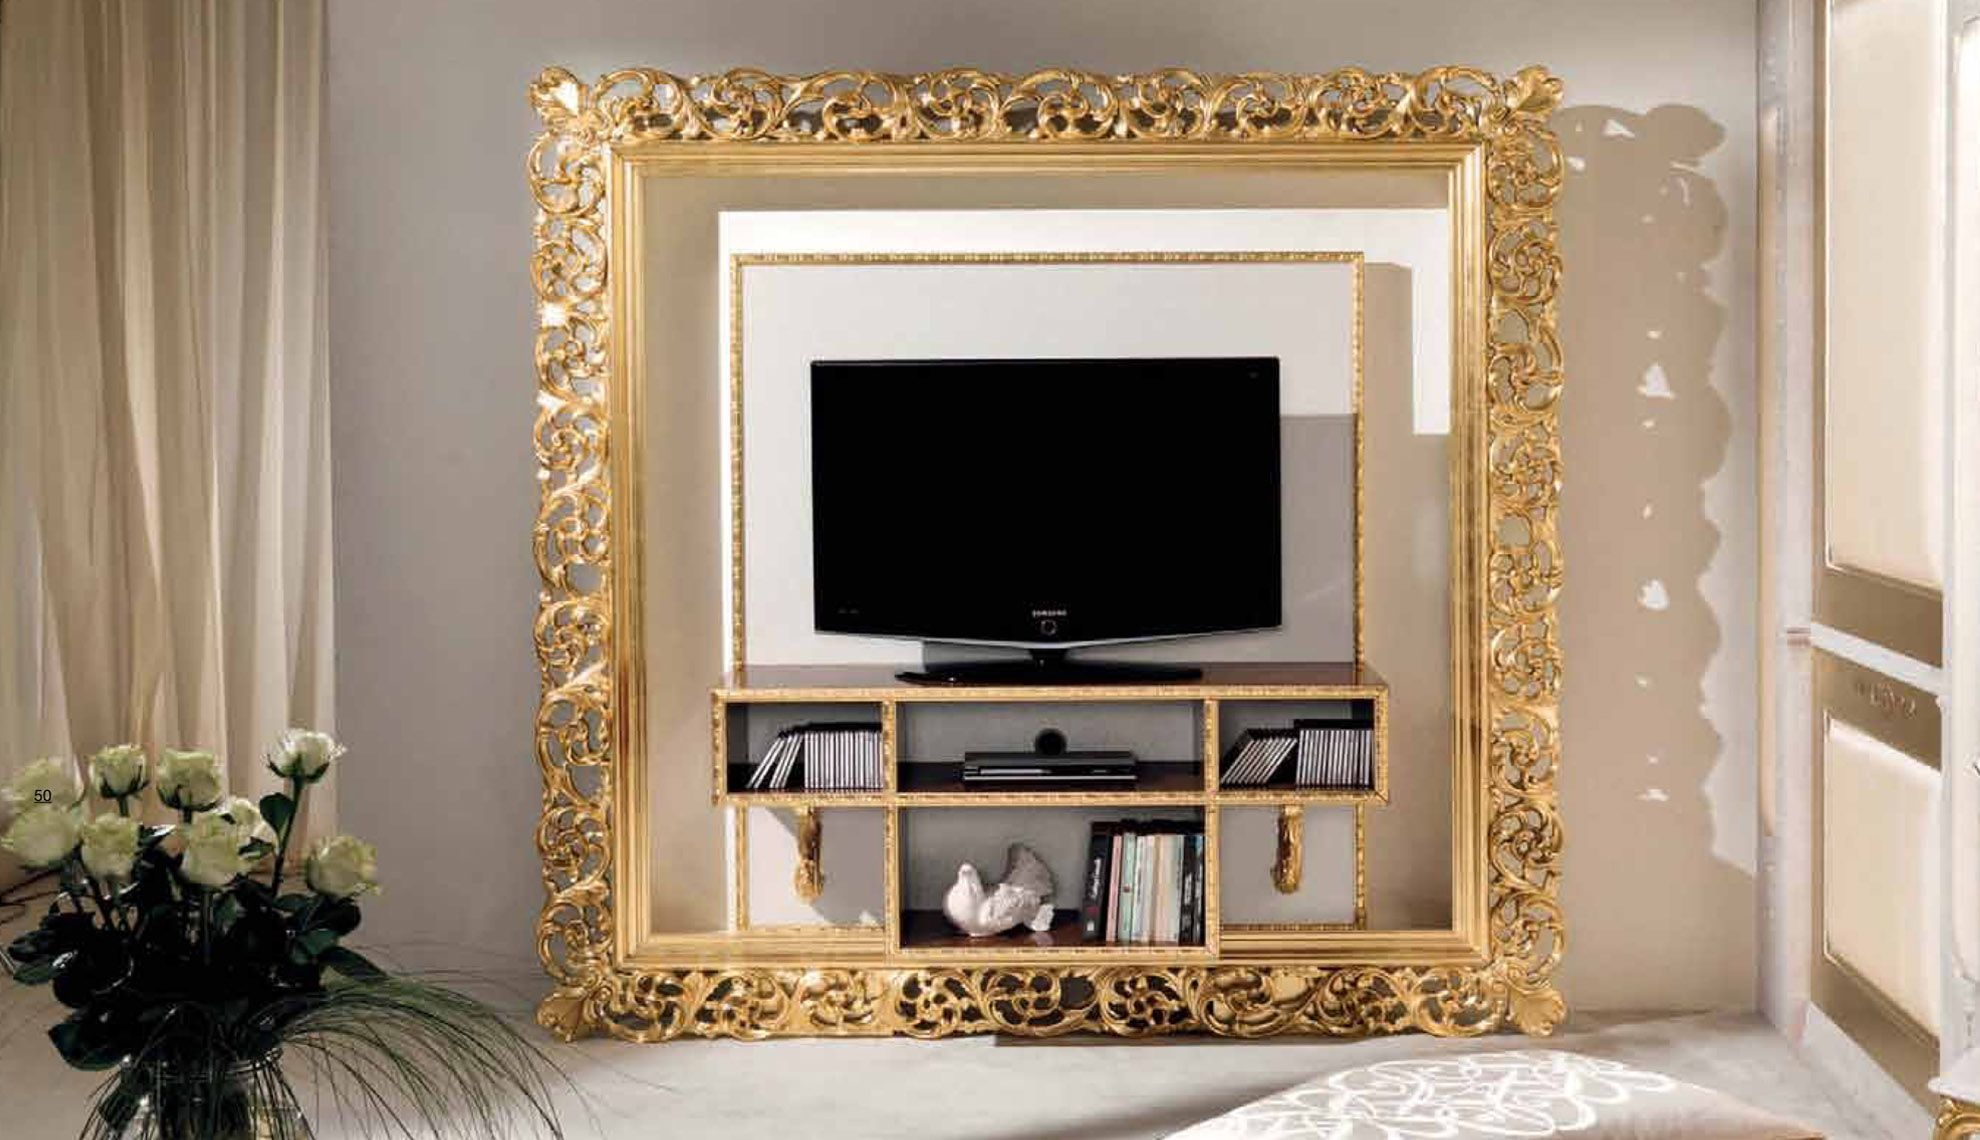 Cool Tv Stand Designs For Your Home Tv Stand Ideas Diy Tv Stand Ideas For Living Room Tv Stand Ideas Bedroom Tv Sta Home Tv Stand Decor Living Room Tv Stand